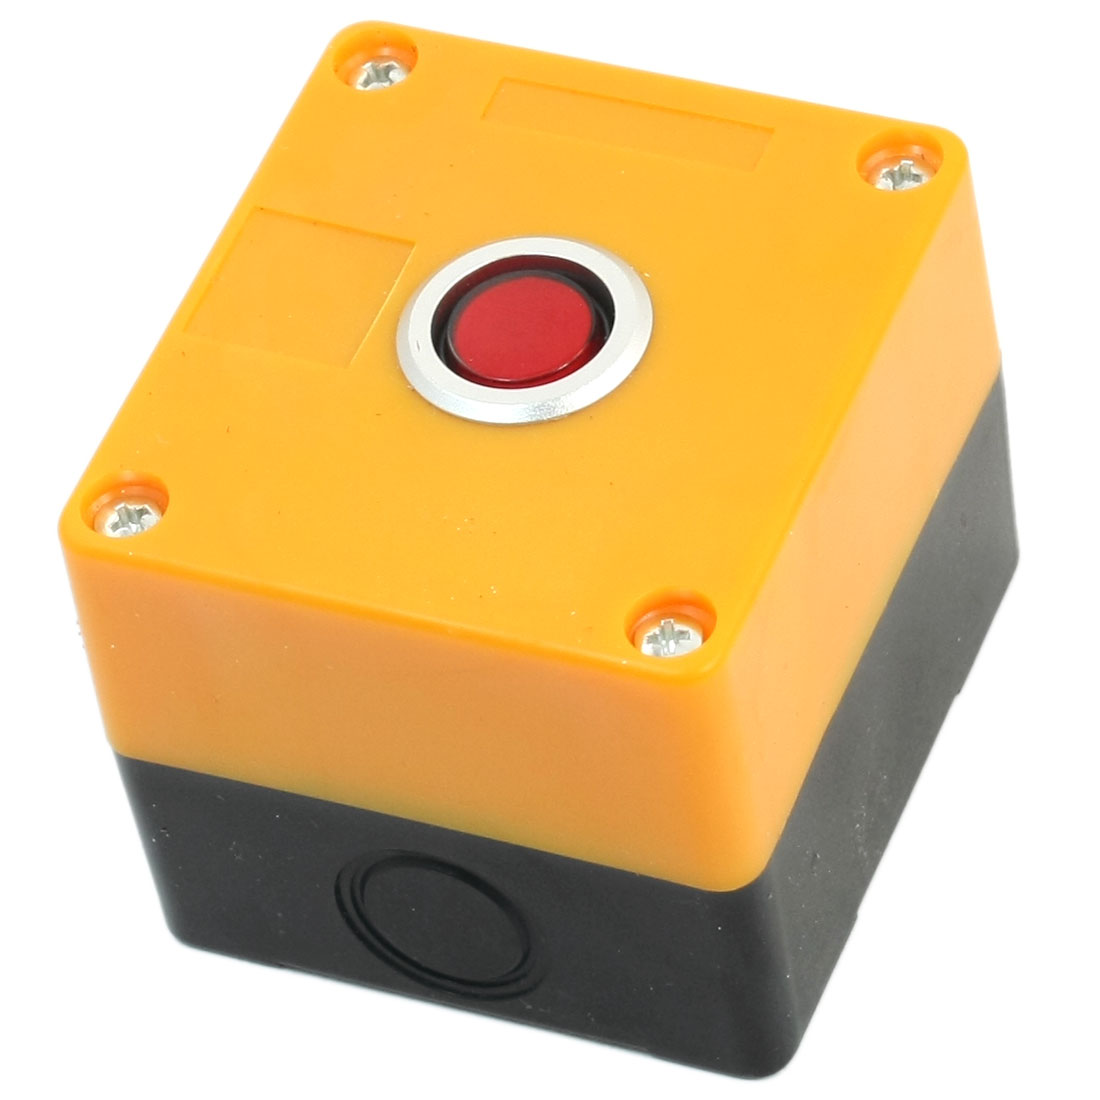 AC 220V 5A 15mm Dia Round Button SPDT 1NO 1NC 3-Pin Self-Locking Red Plastic Pushbutton Station Switch Control Box